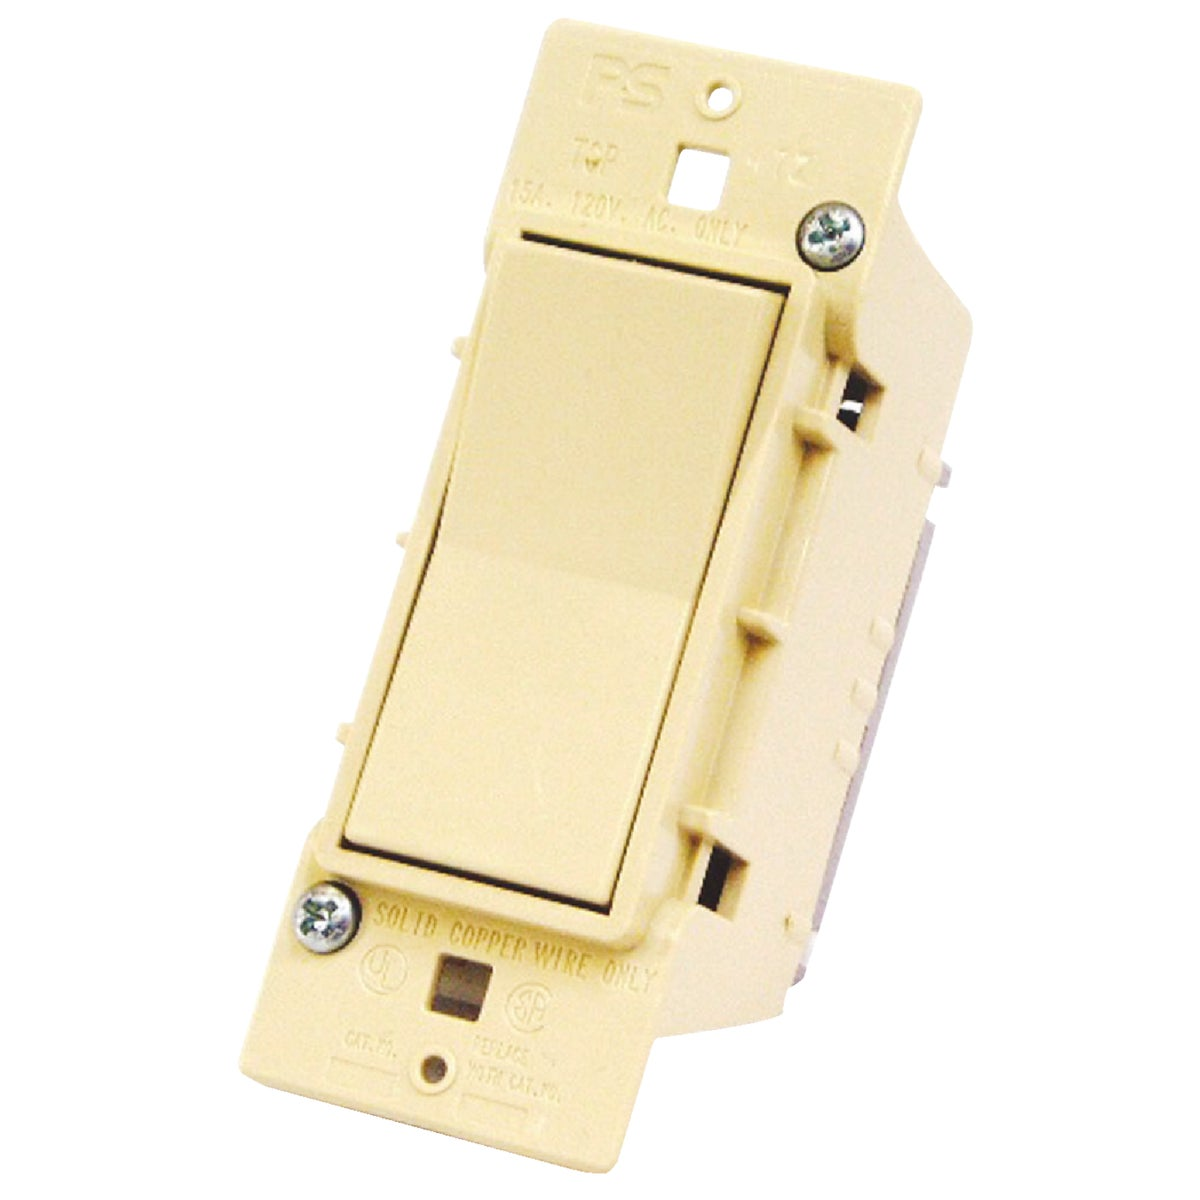 ELECTRICAL SWITCH - E-100C by U S Hardware